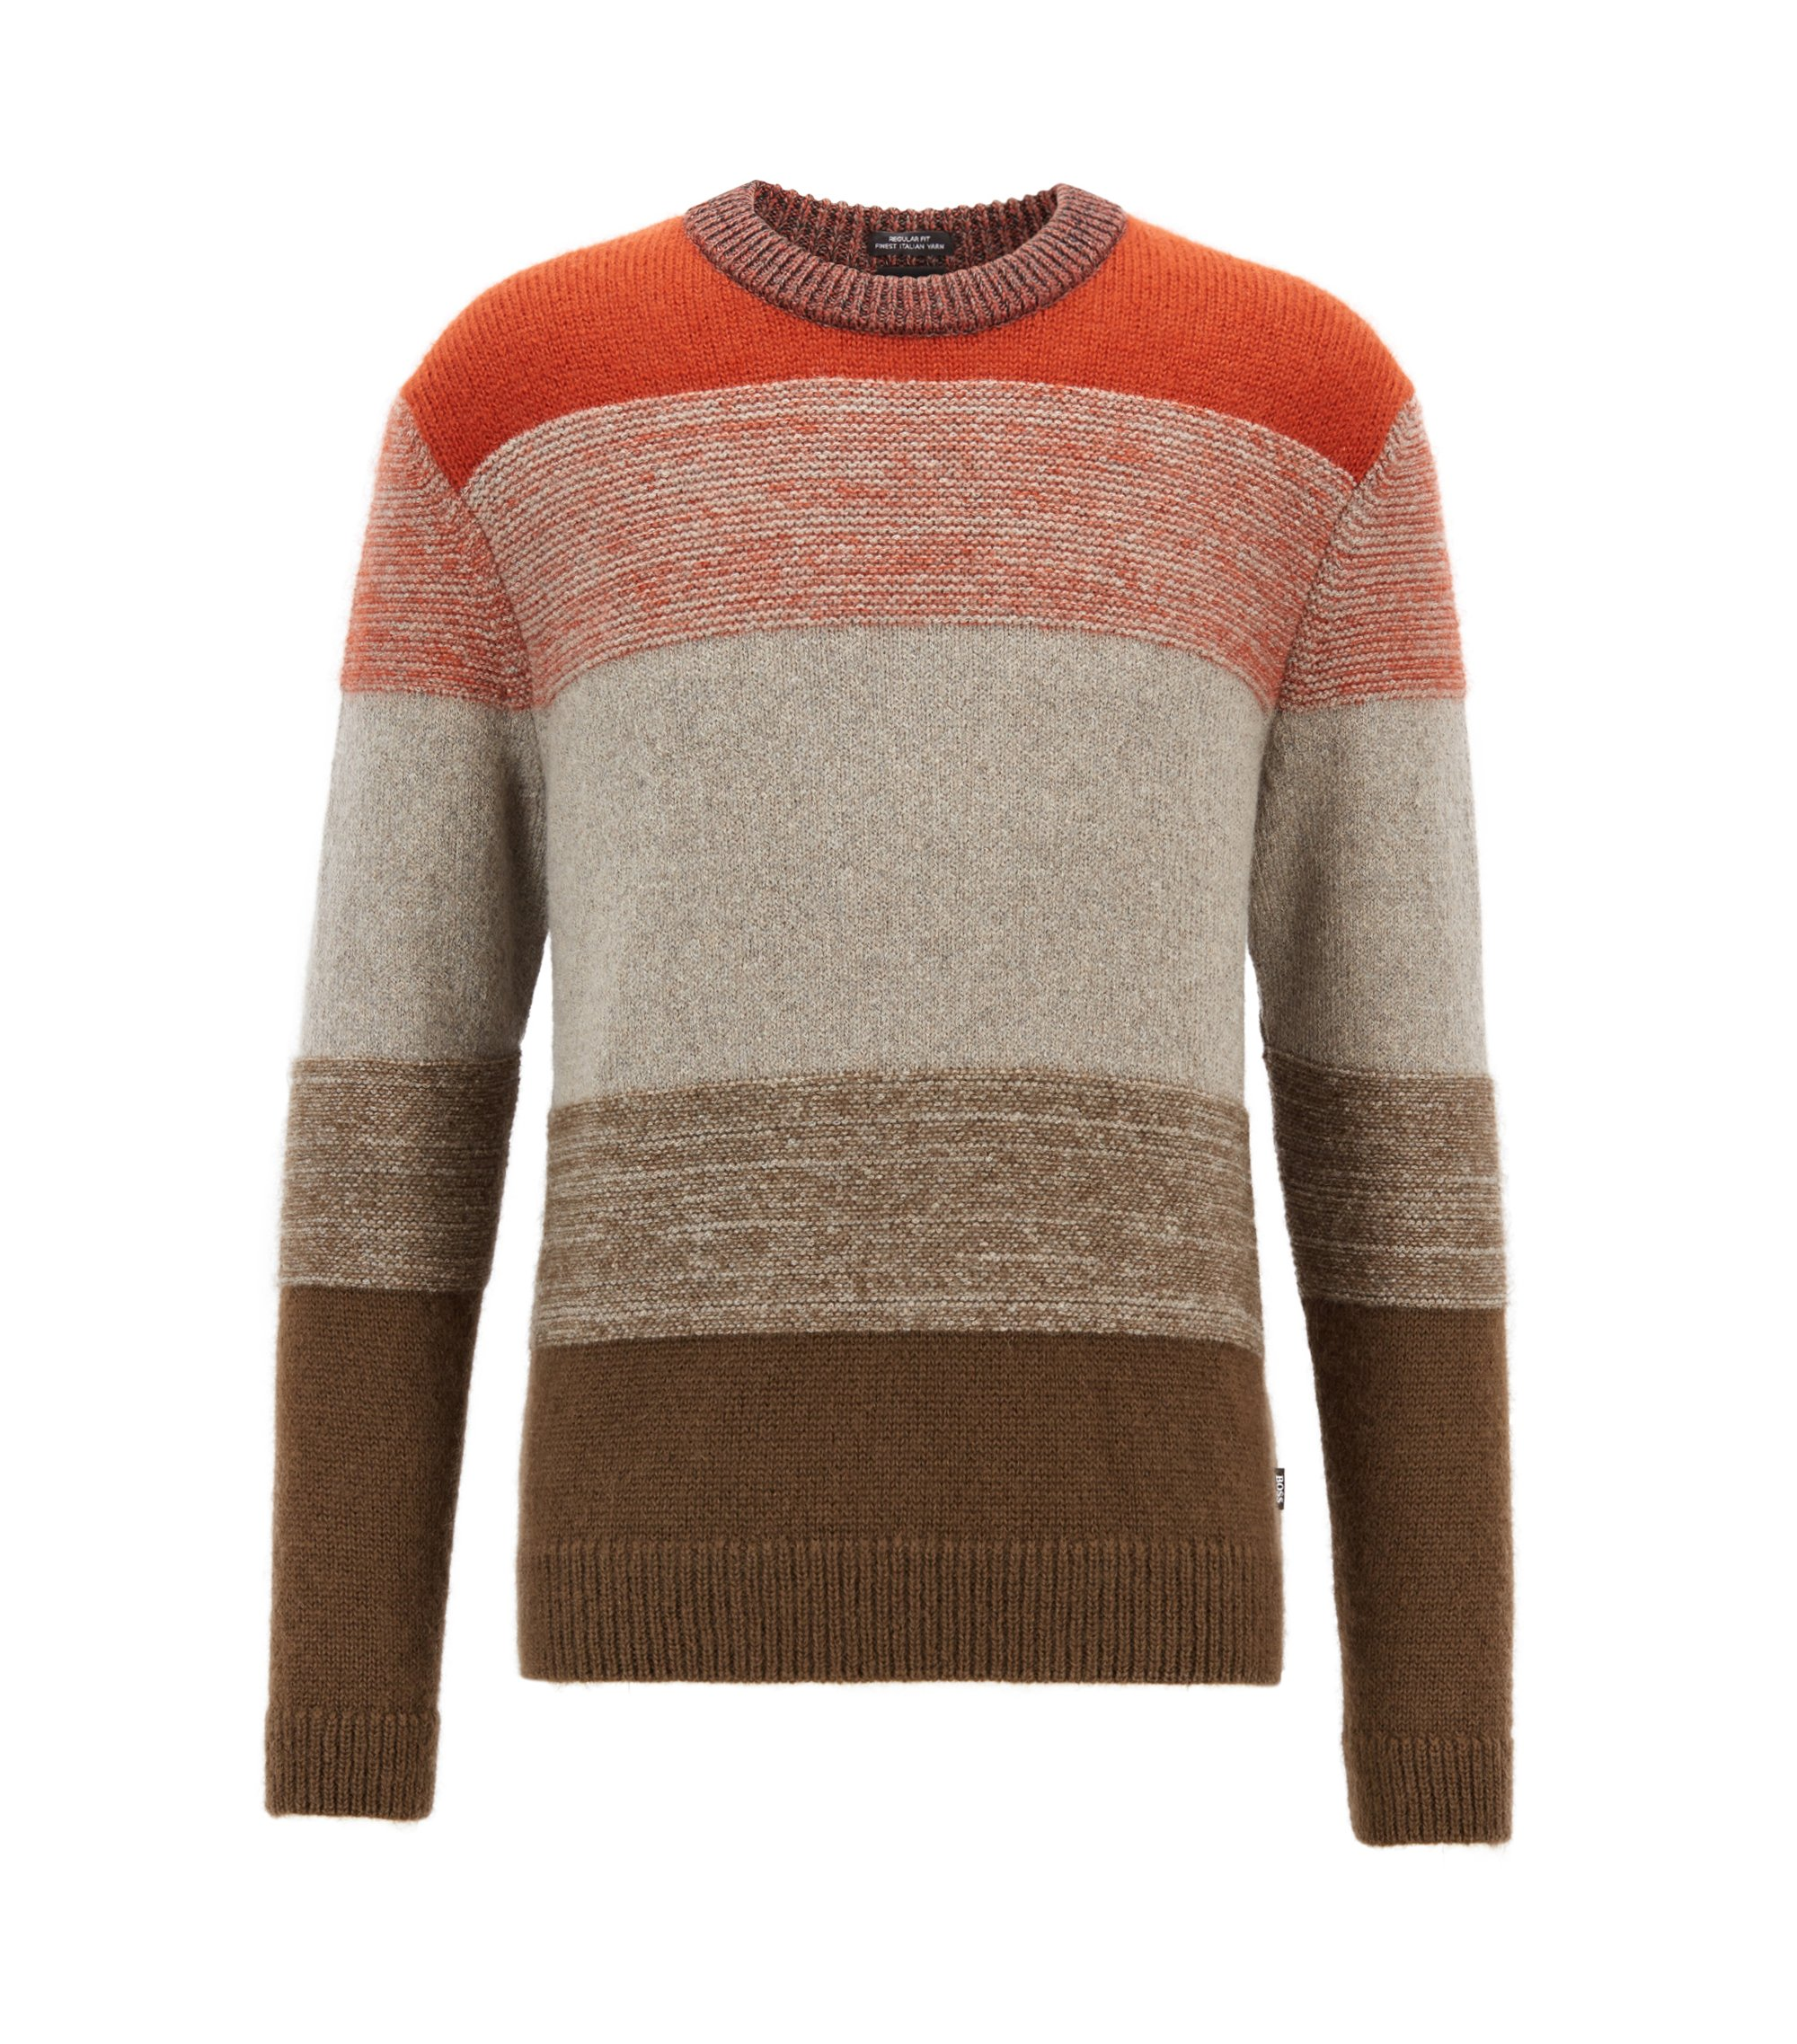 Textured sweater with dégradé colour-block stripes, Patterned